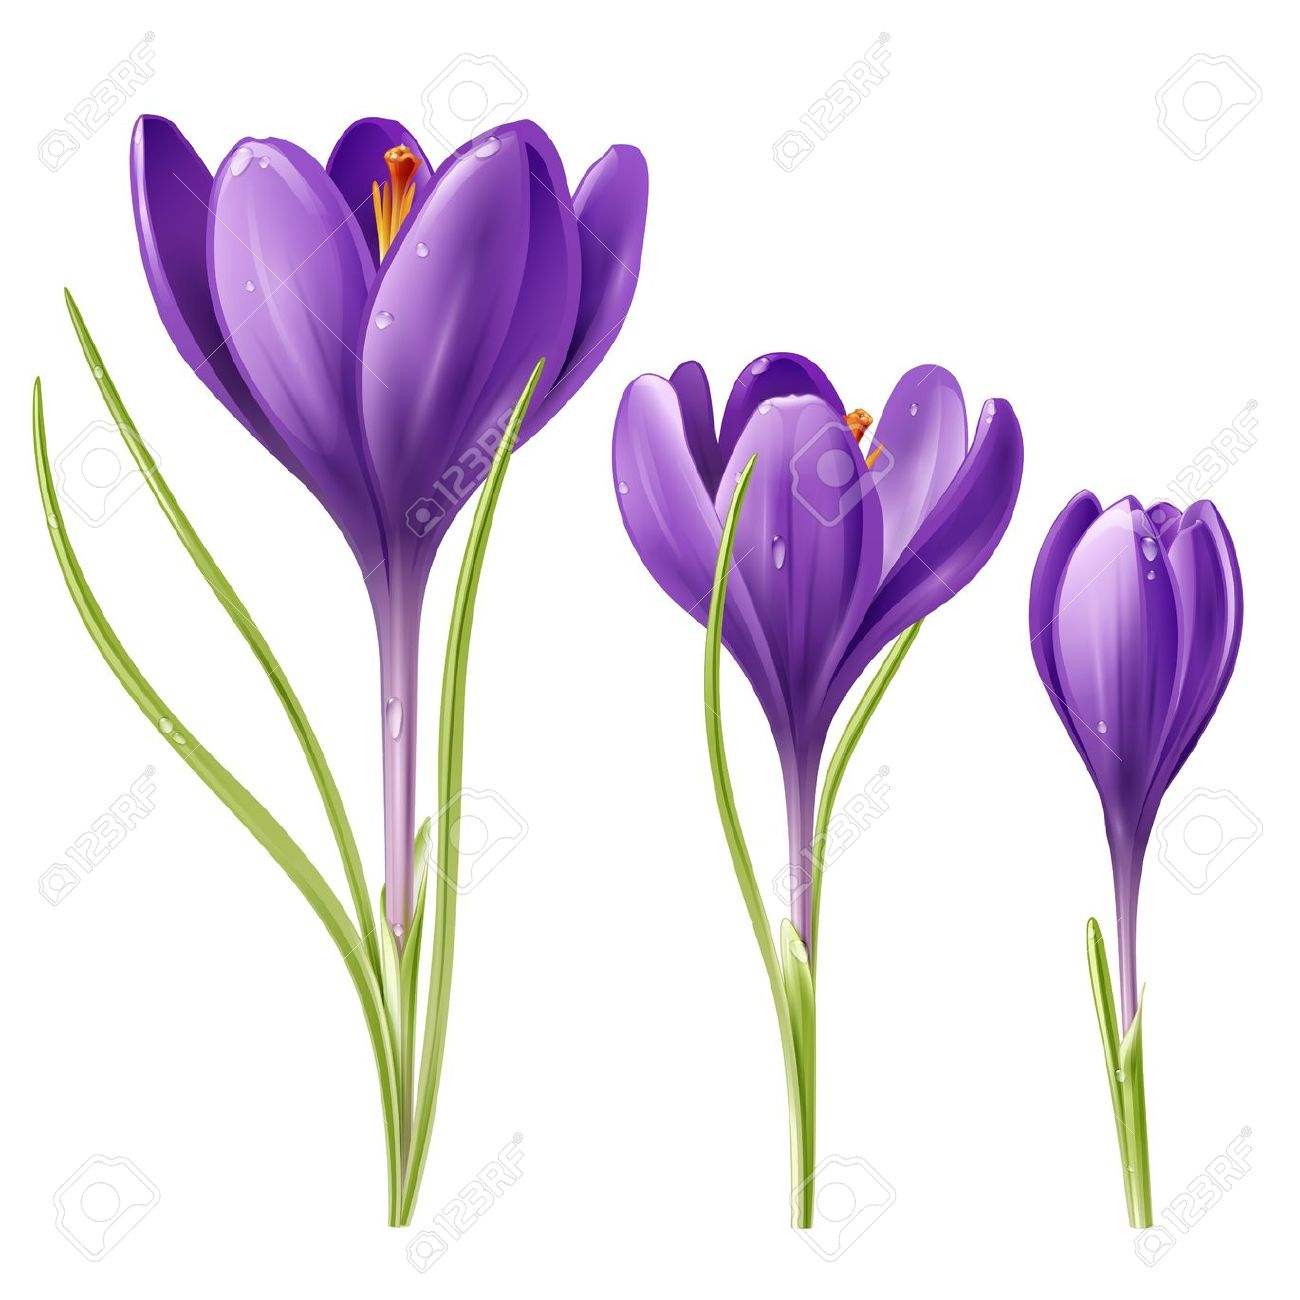 Vector Illustration Of Three Crocus Flowers Royalty Free Cliparts.